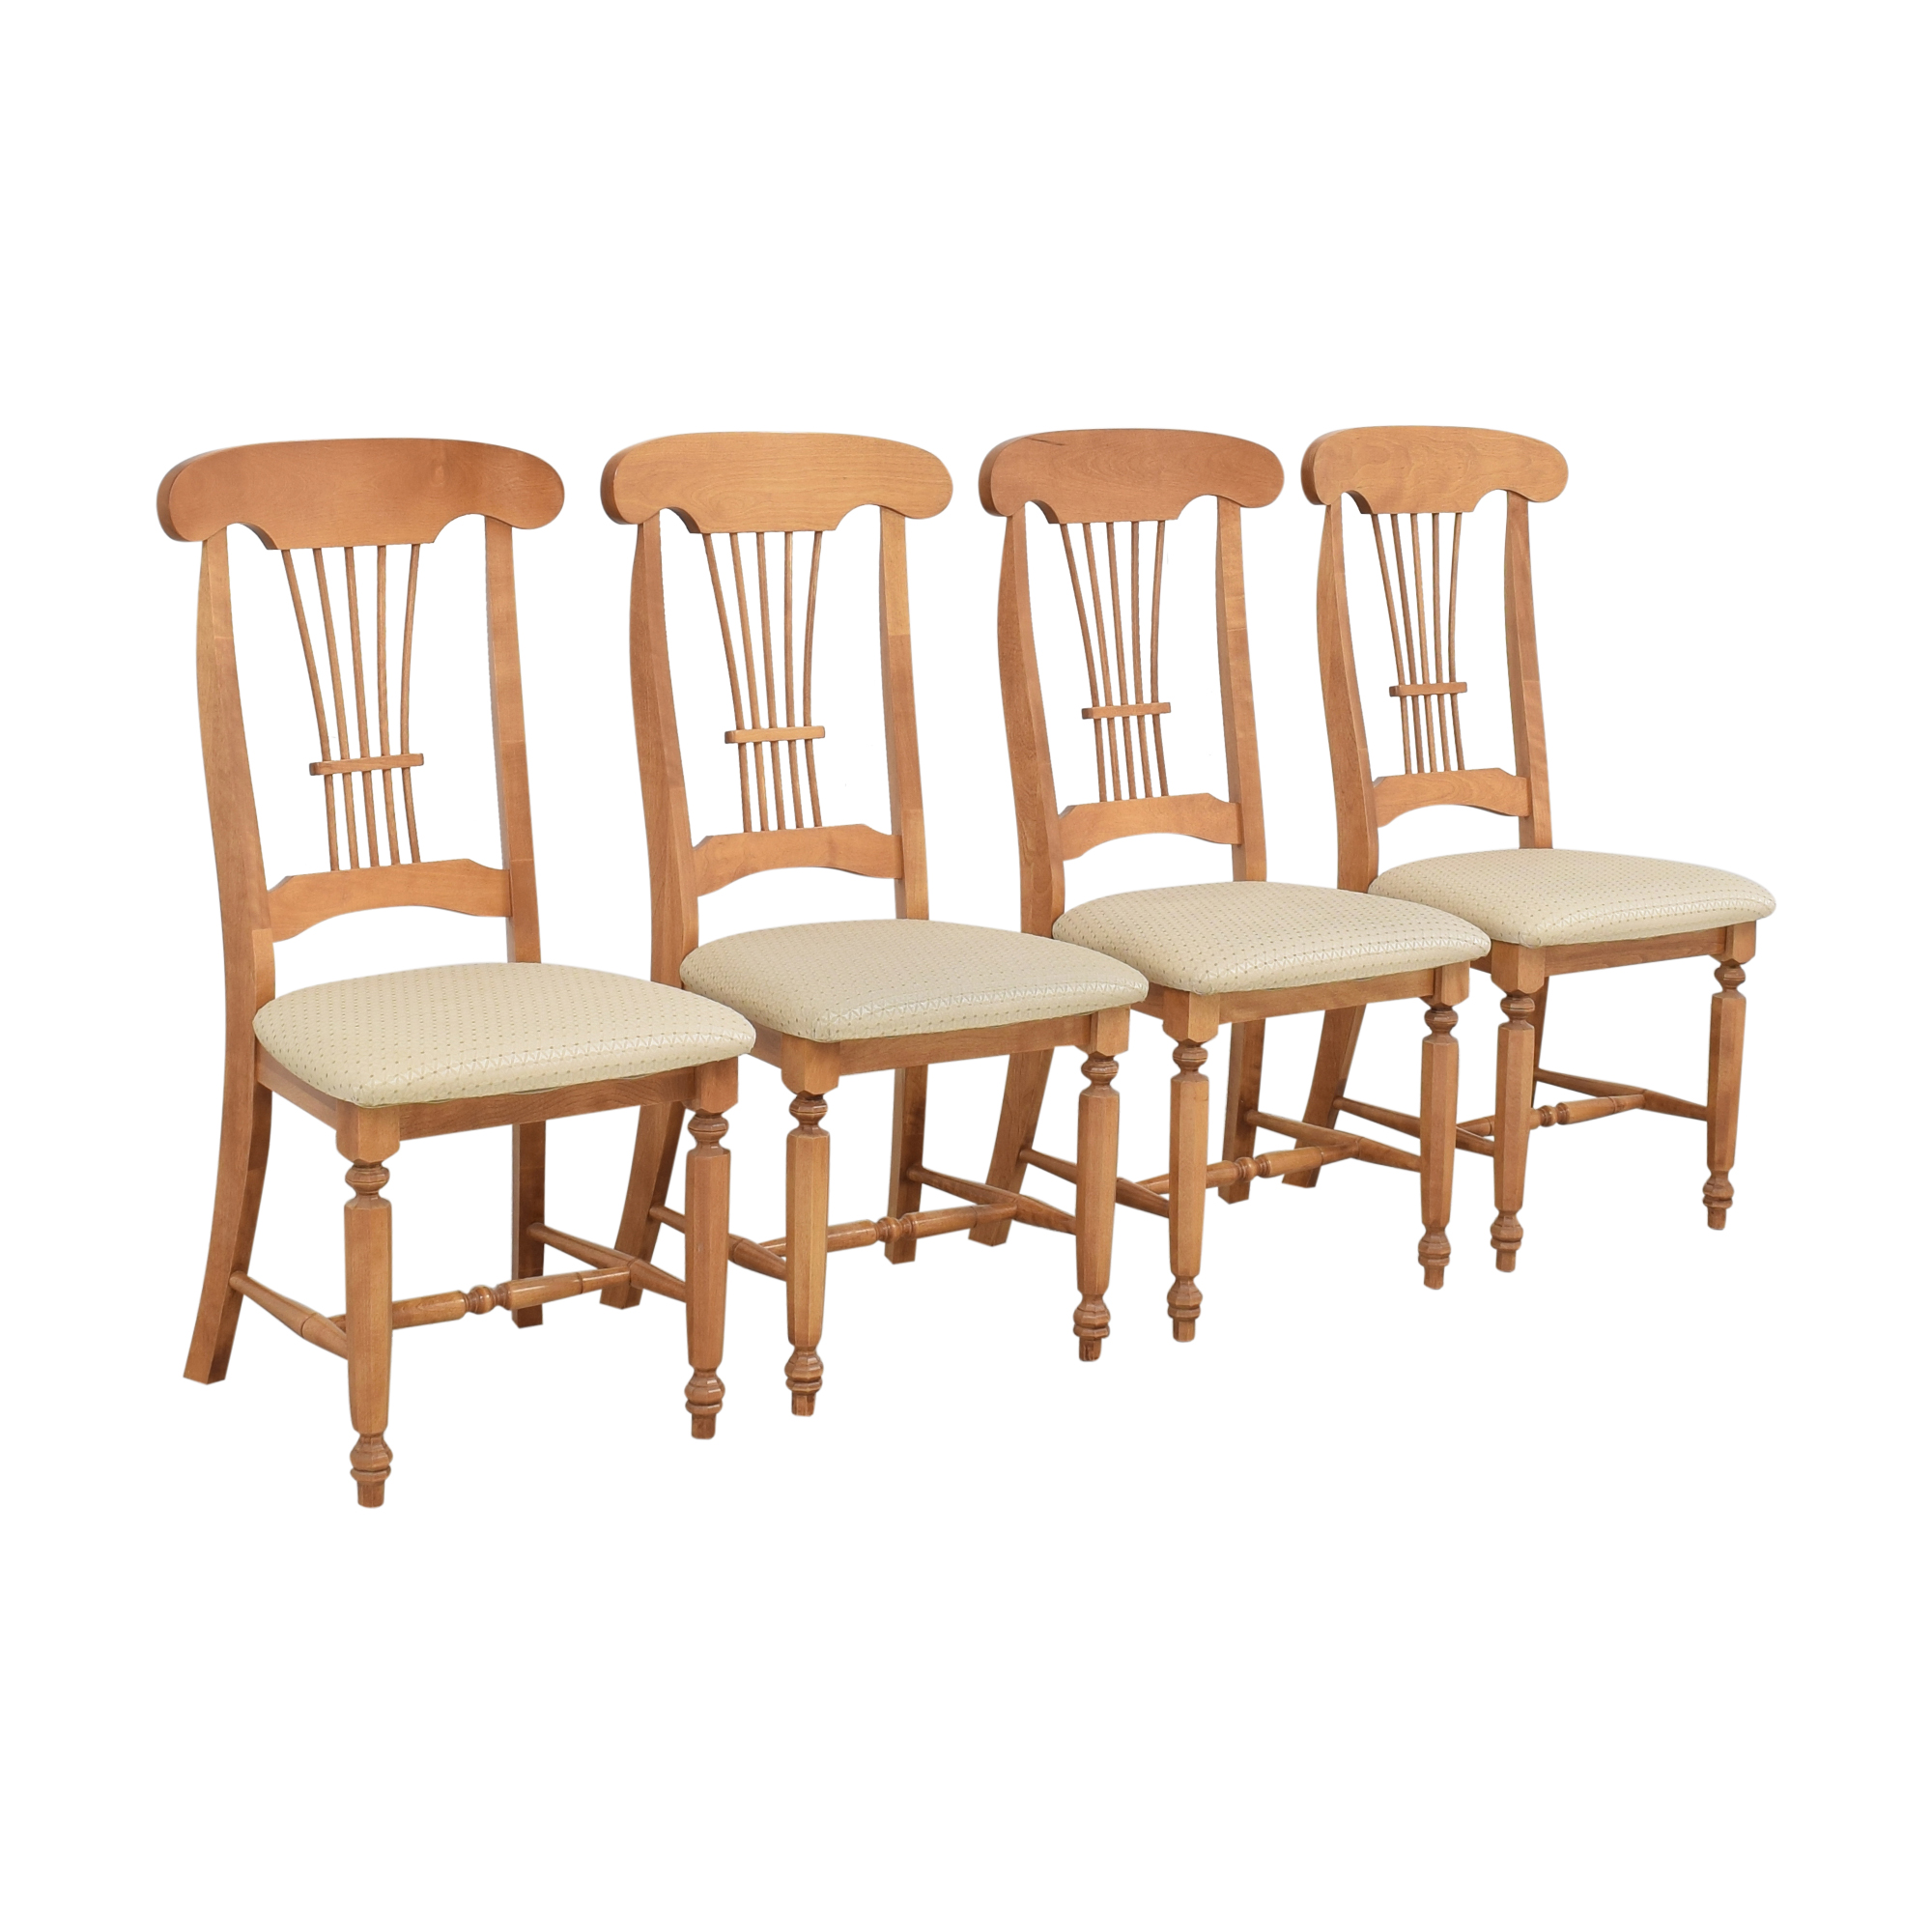 Canadel Canadel Upholstered Dining Chairs for sale